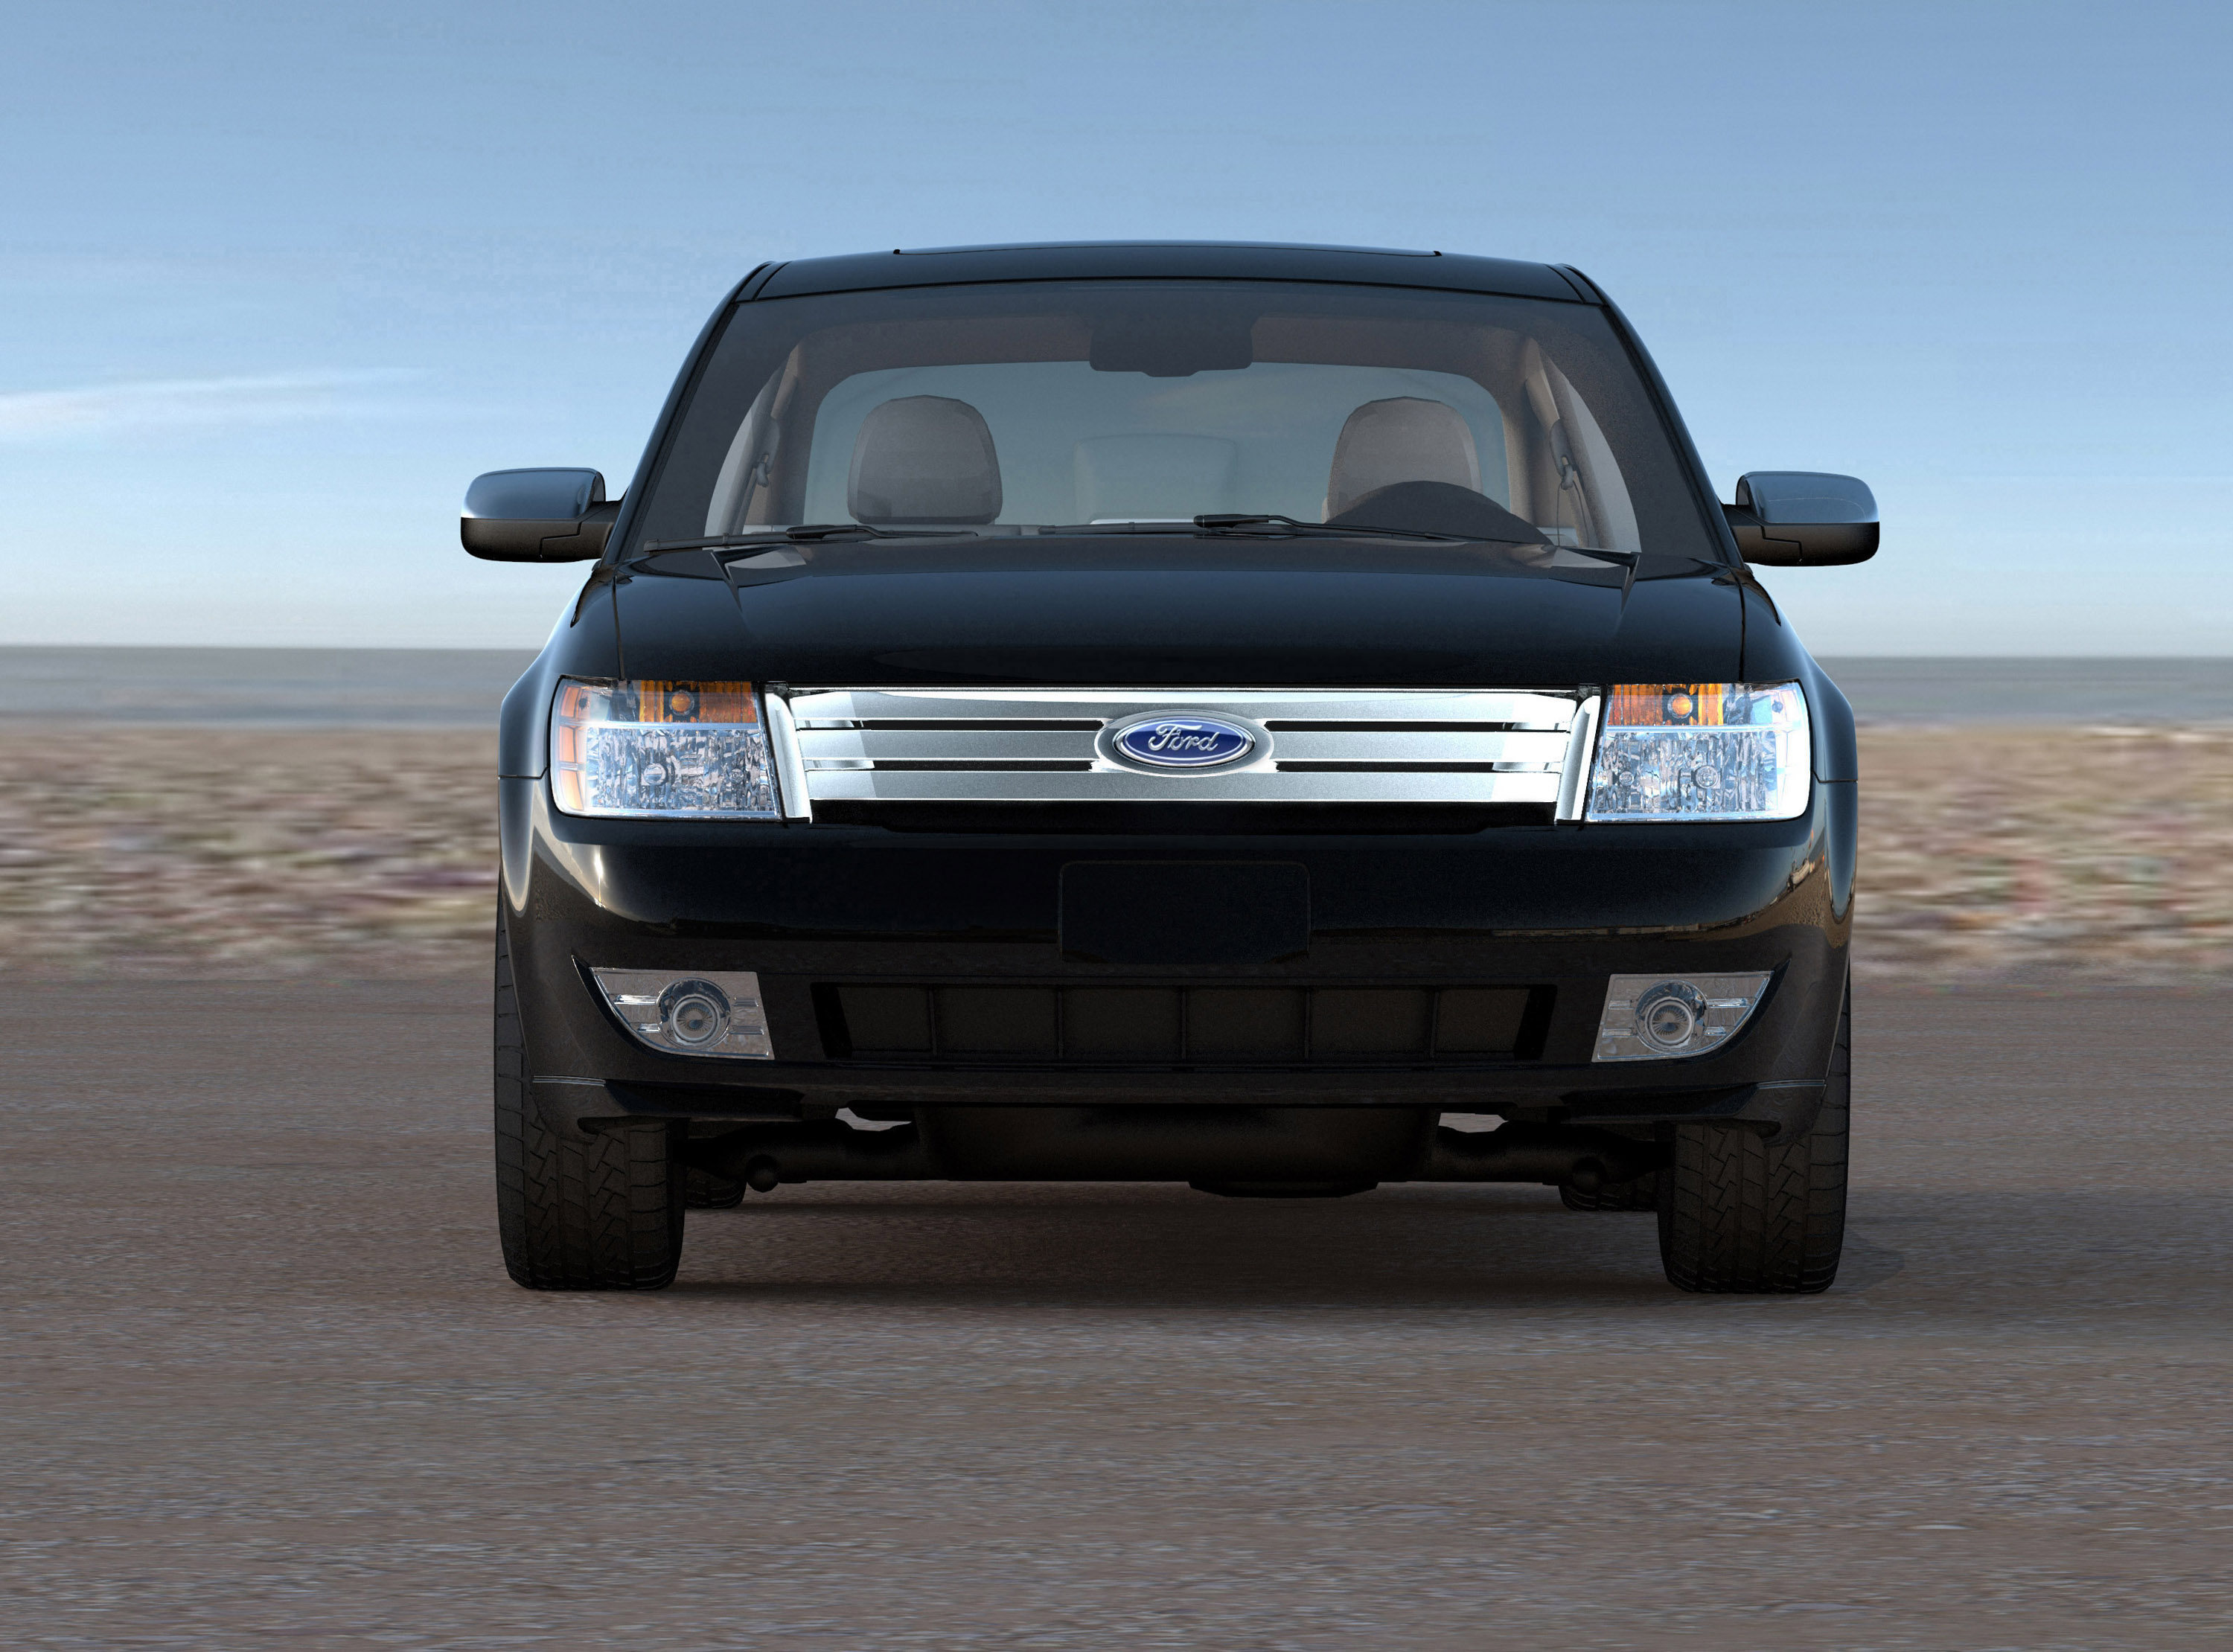 Click image for larger version  Name:08Taurus_12.jpg Views:943 Size:858.3 KB ID:16248